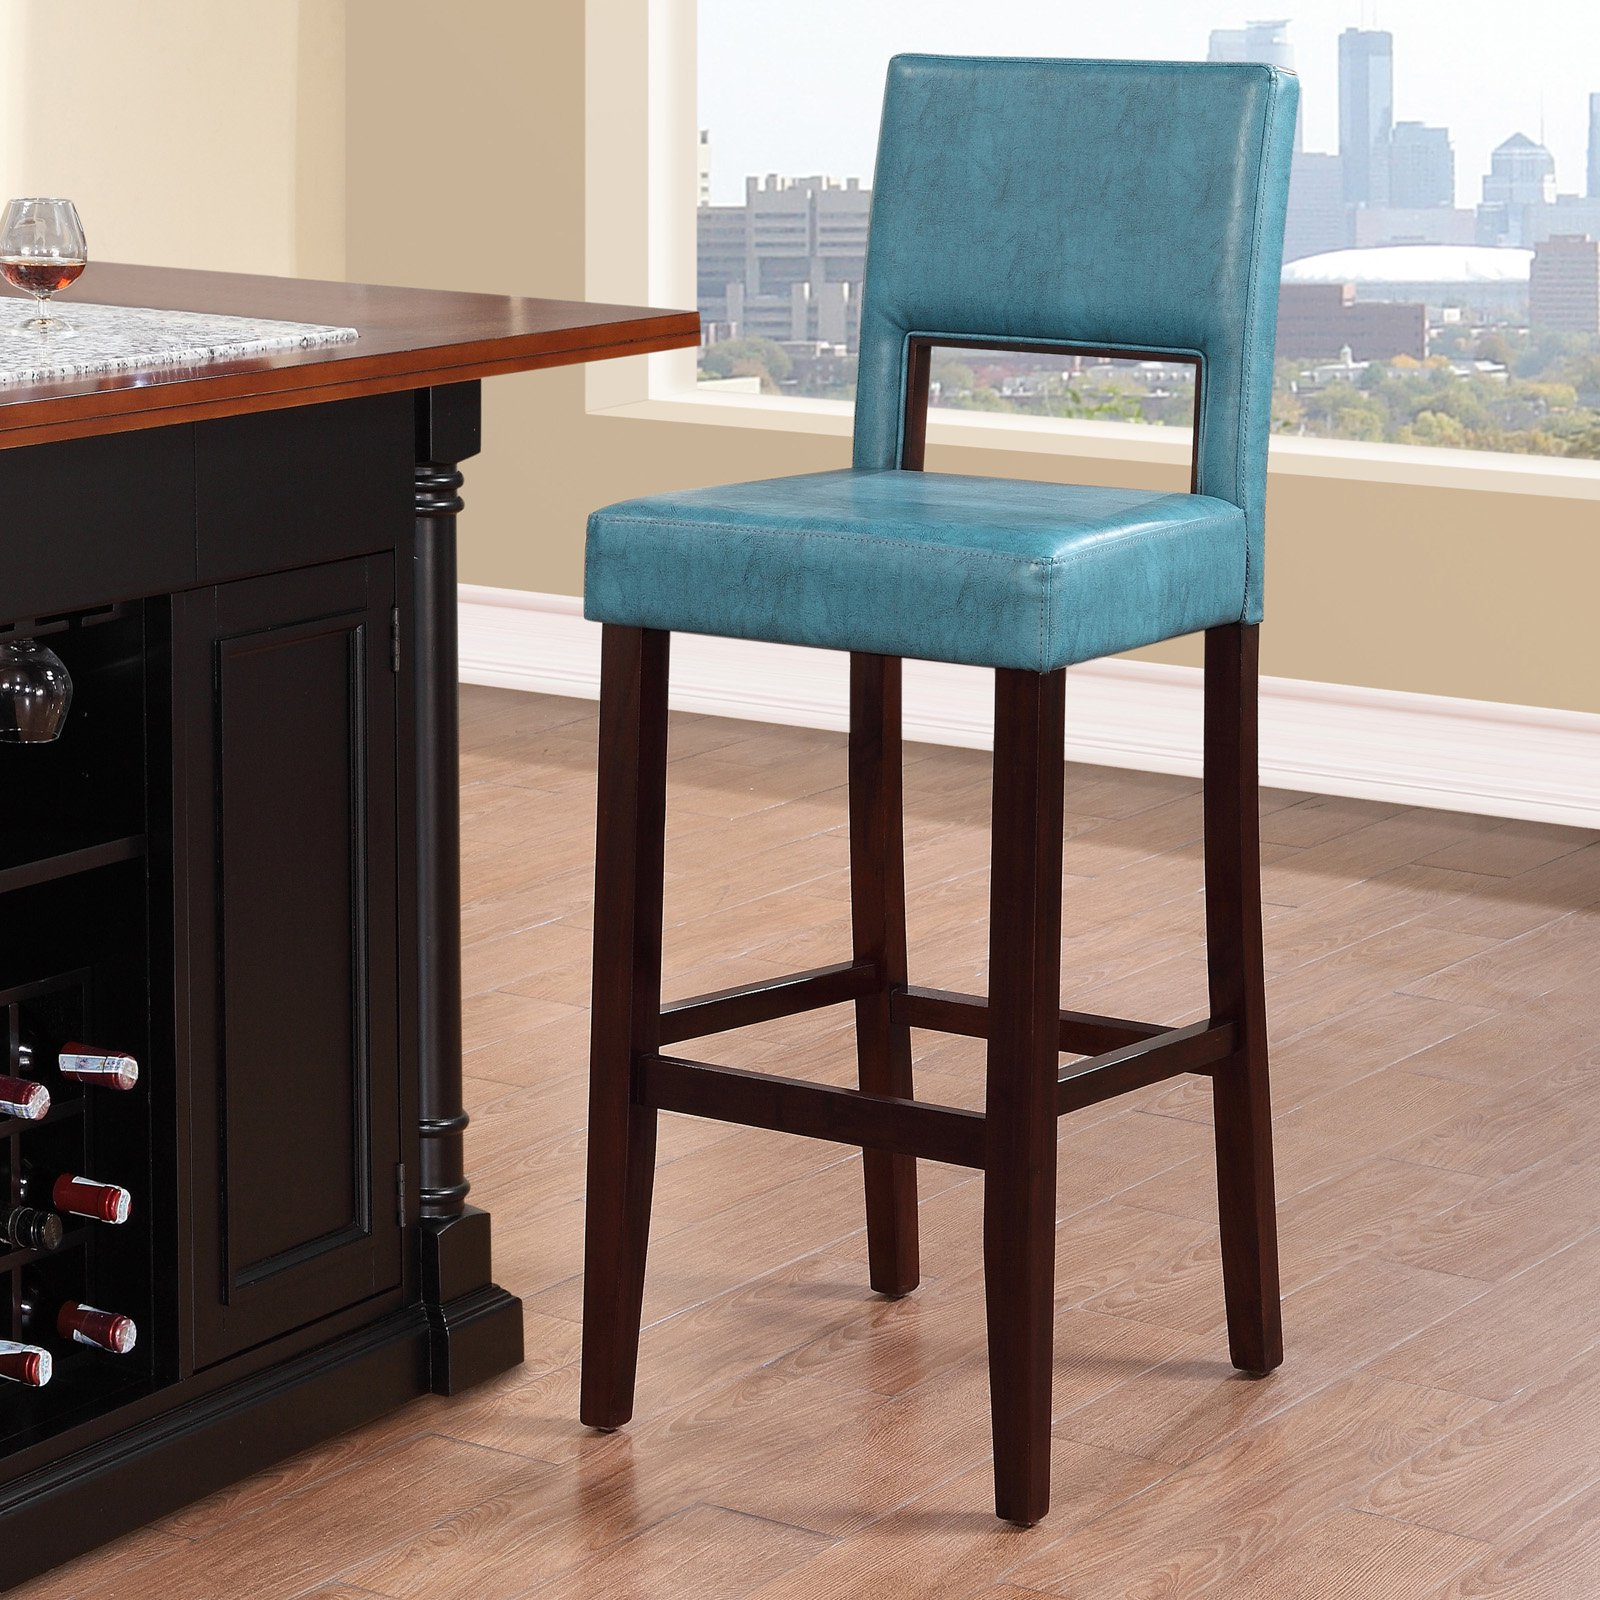 Bright Colored Bar Stools 18 Colorful Bar Stools For Your Family Kitchen